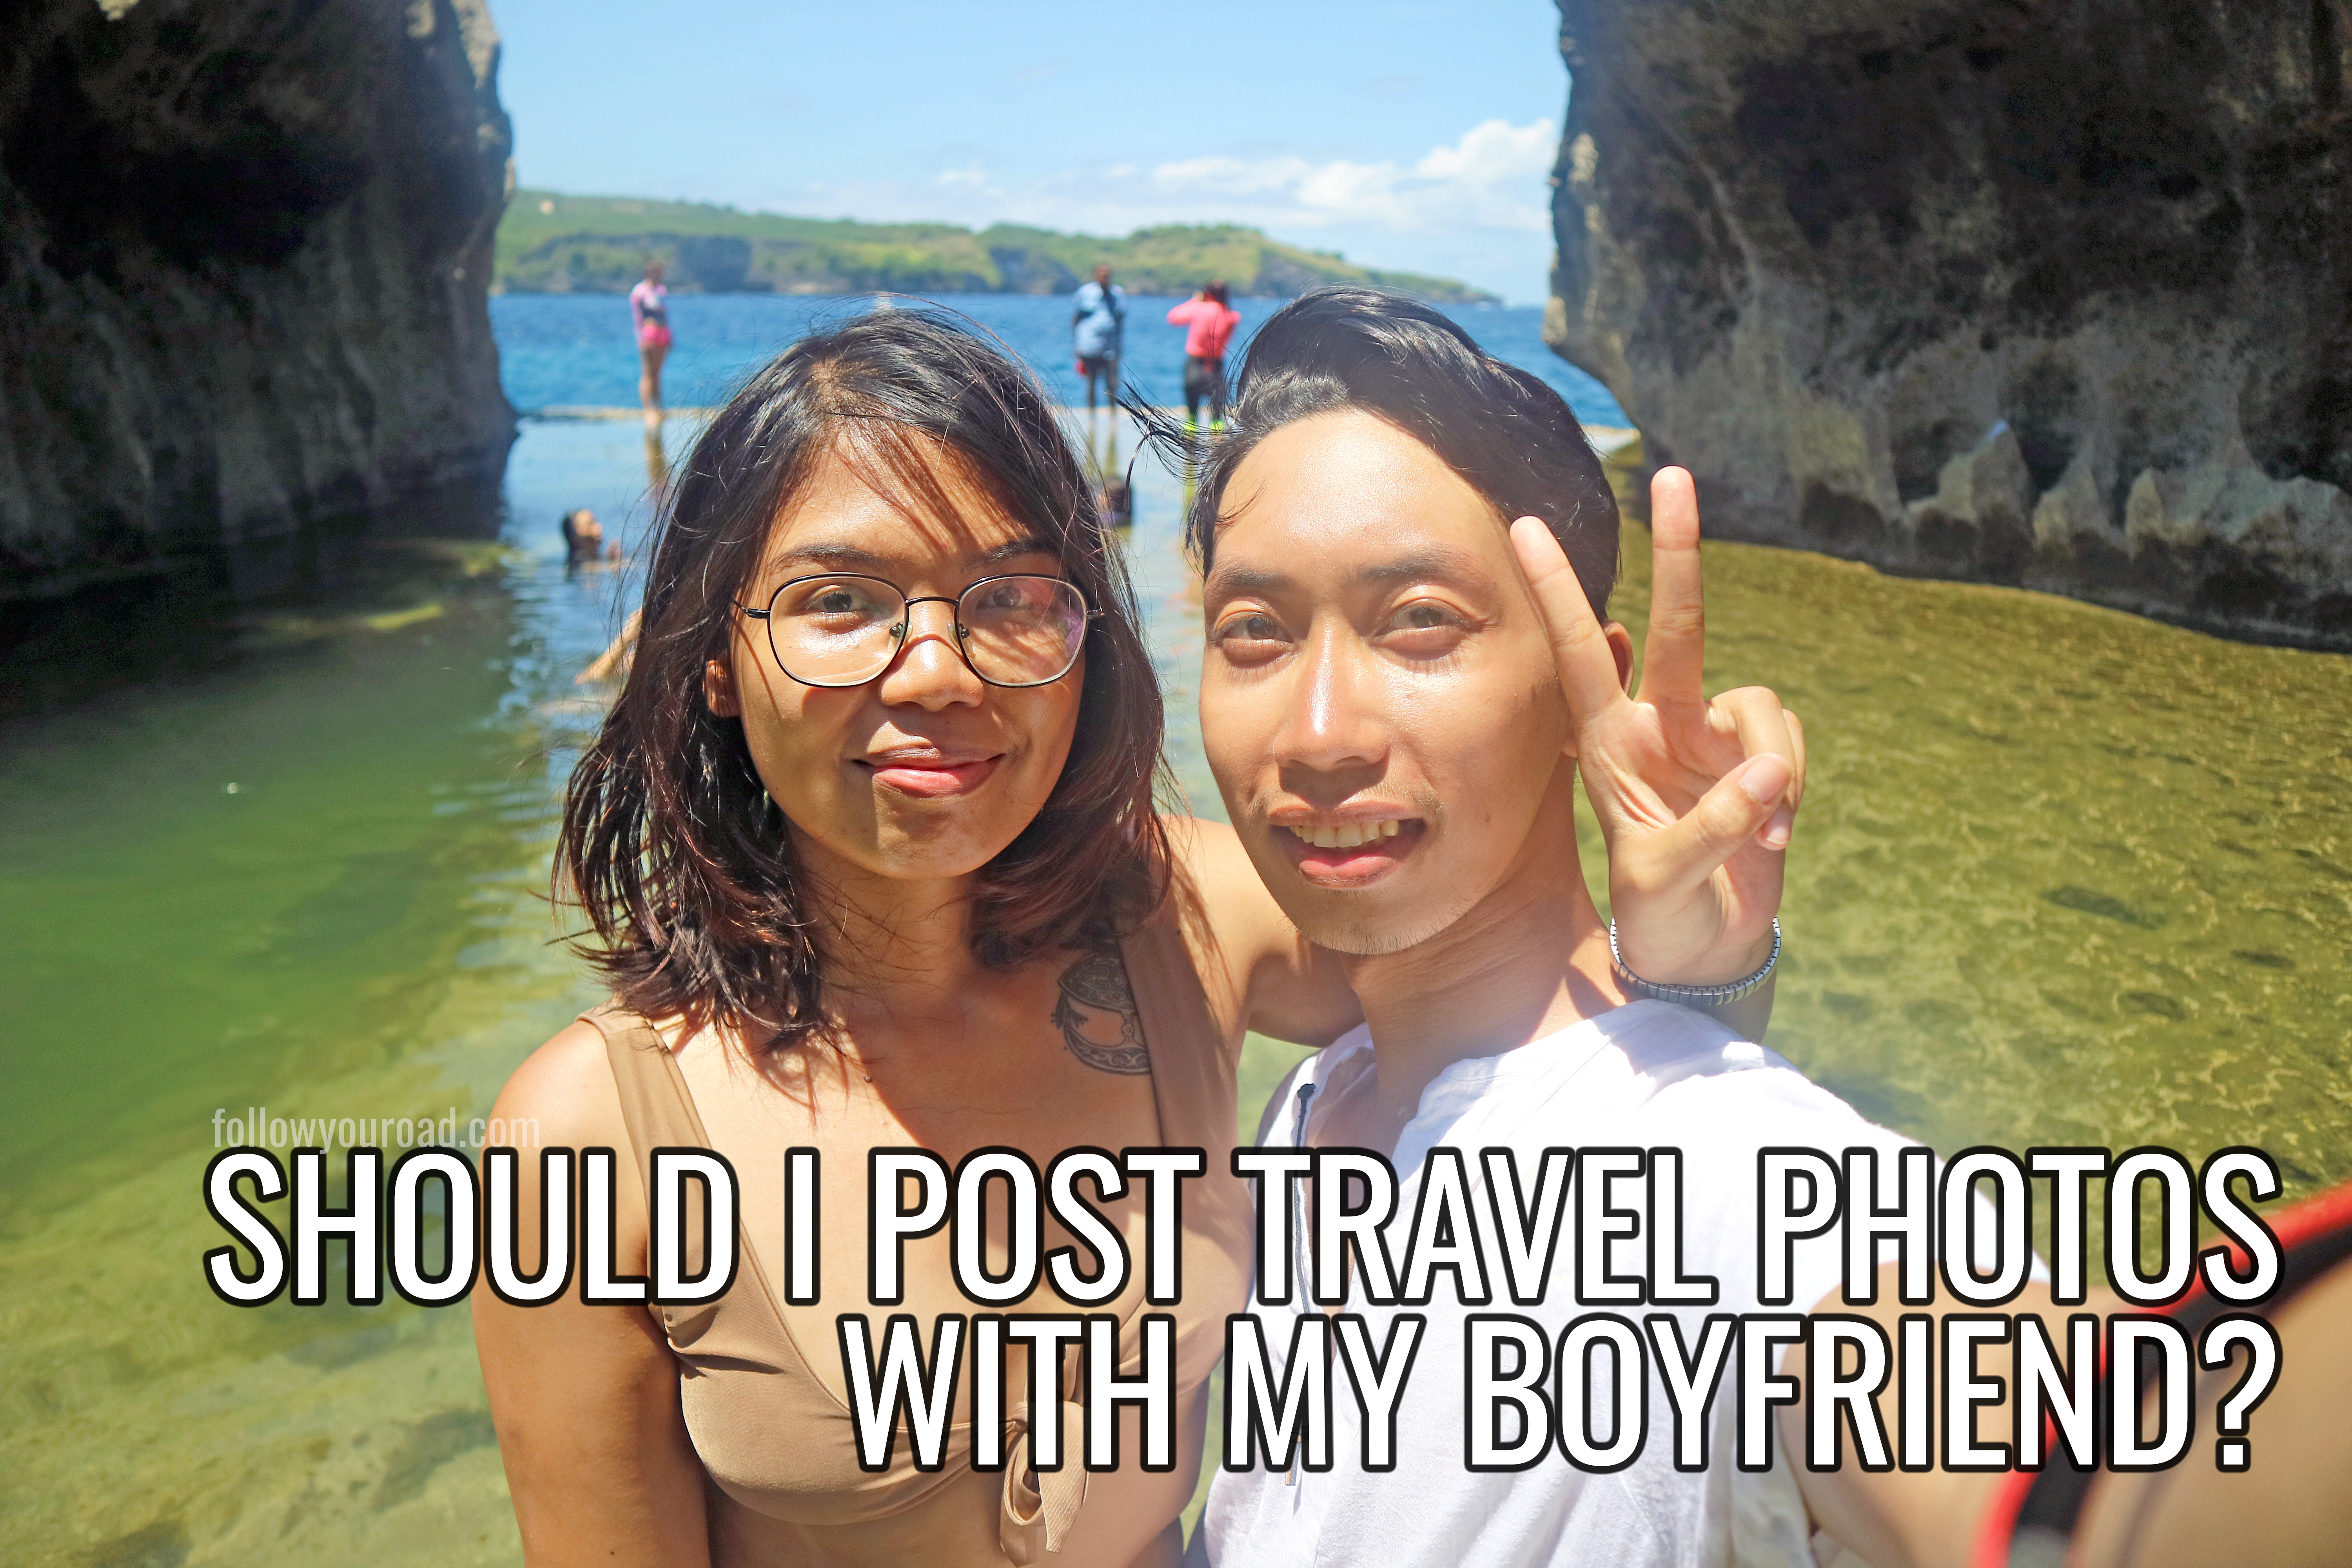 Should I Post Travel Photos with my Boyfriend on Facebook?